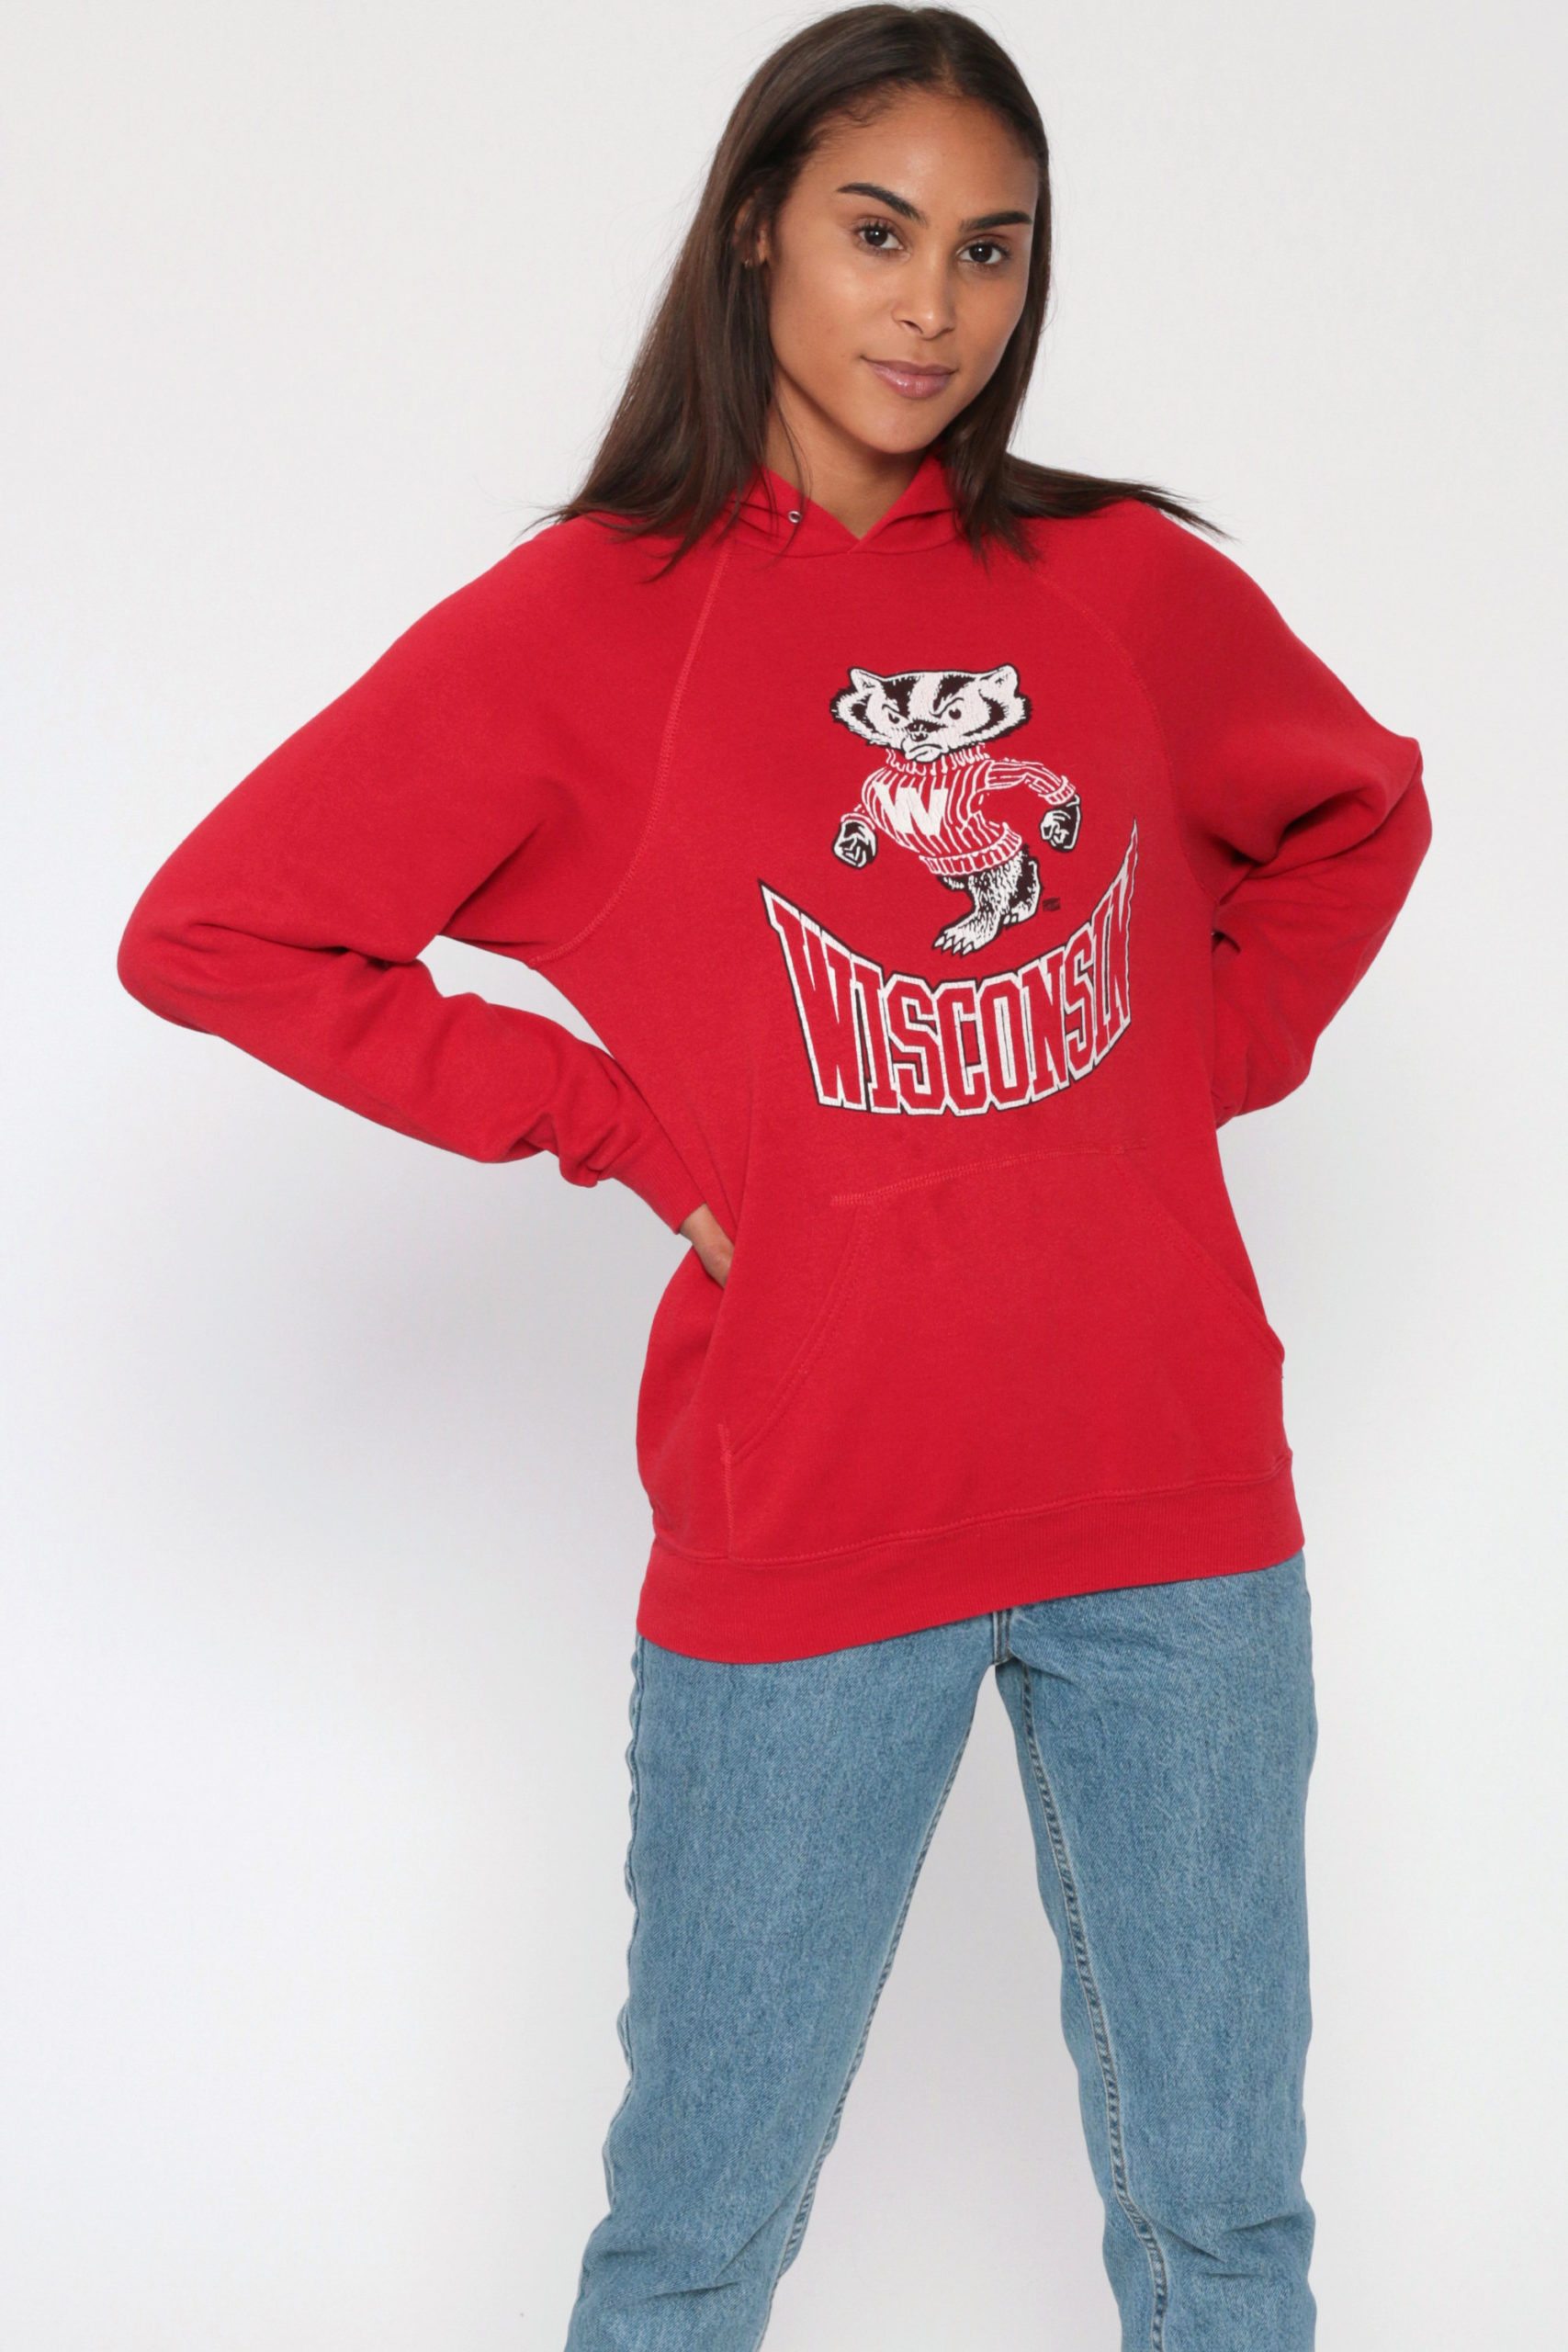 佐藤勝利 VS魂 1/21 衣装 赤 レッド パーカーWisconsin Badgers Hoodie University Sweatshirt 80s Hooded Retro Slouchy Red Hoodie College Shirt 1980s Vintage Jumper Hood